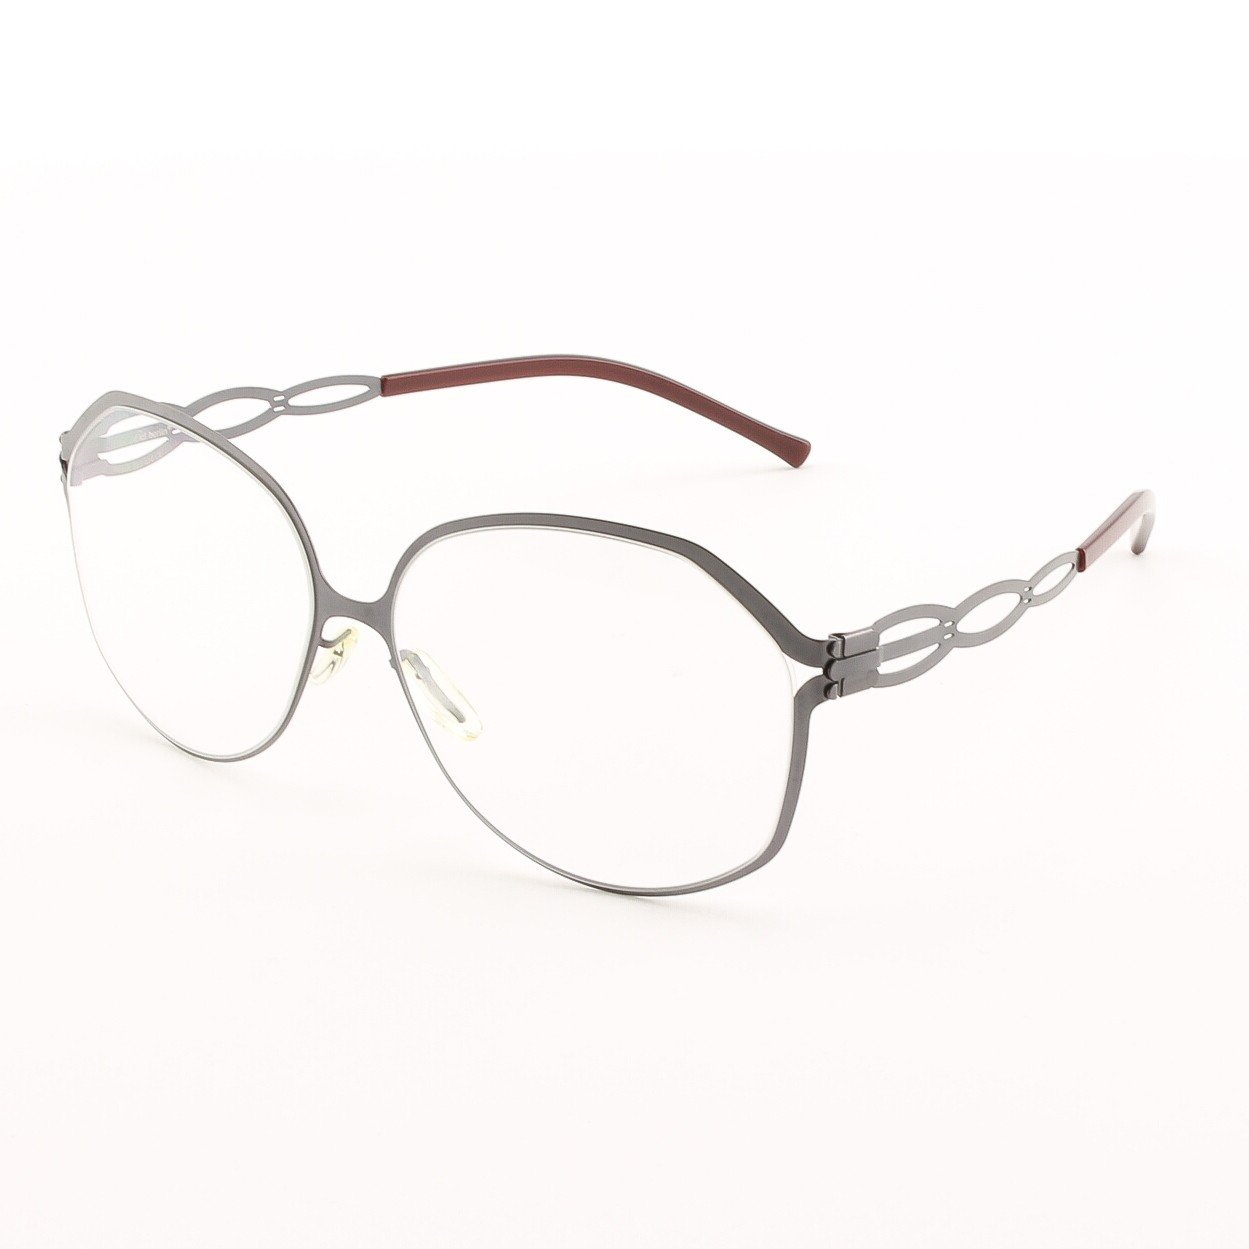 ic! Berlin Dimanche Eyeglasses Col. Ash Grey / Wine with Clear Lenses